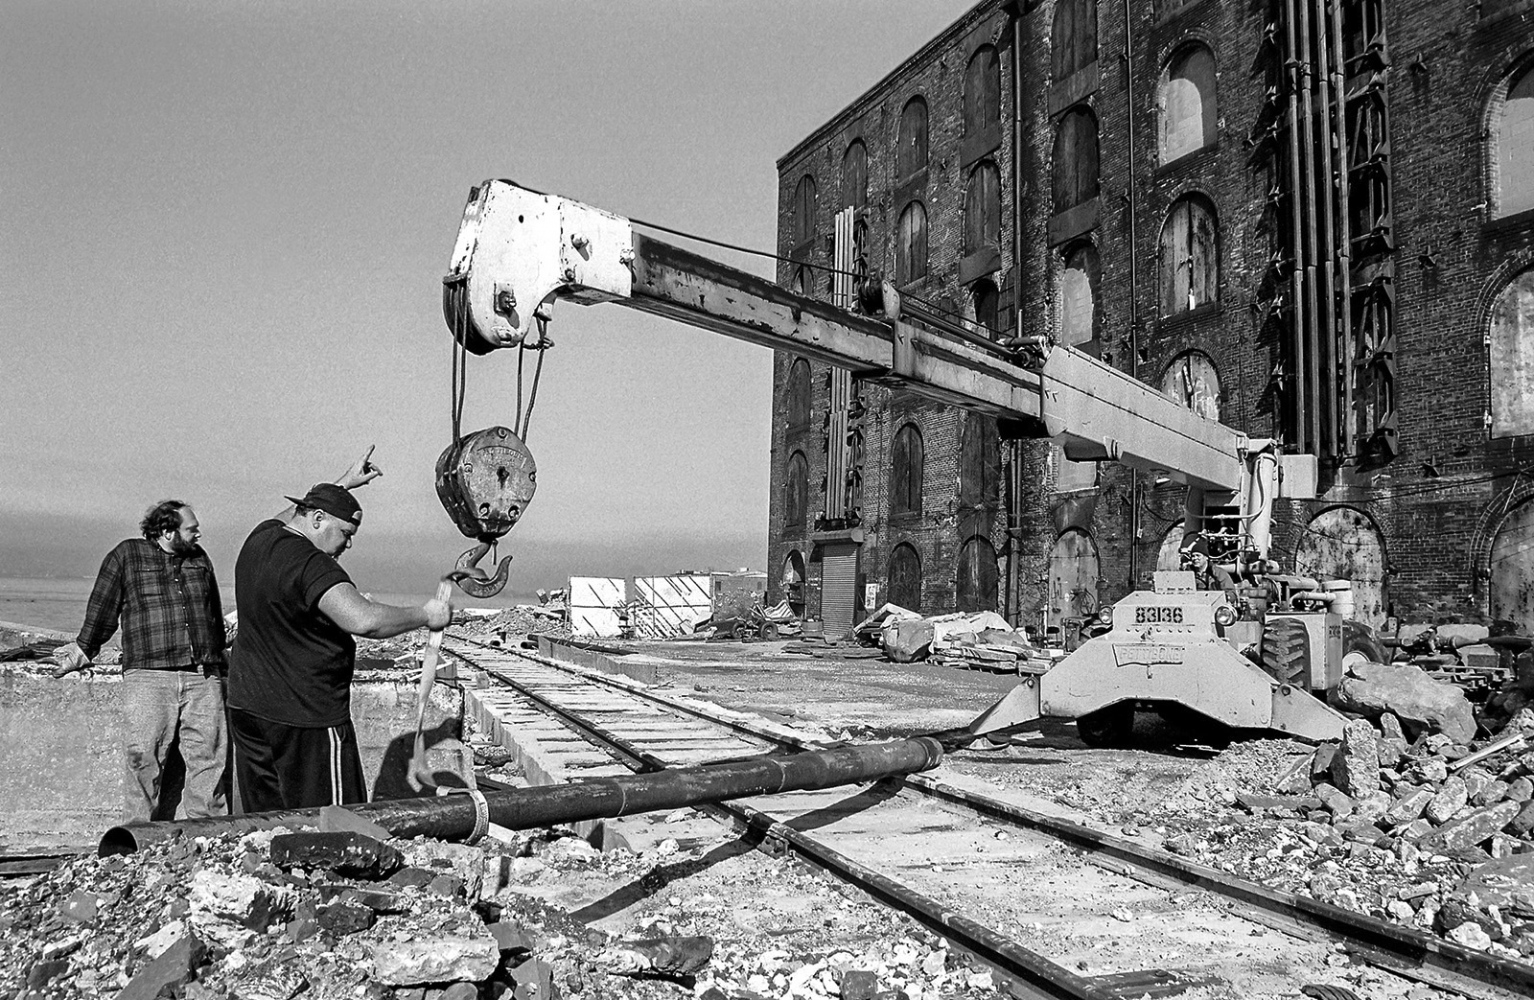 Art and Documentary Photography - Loading 9.King.Wm.BHRA.jpg